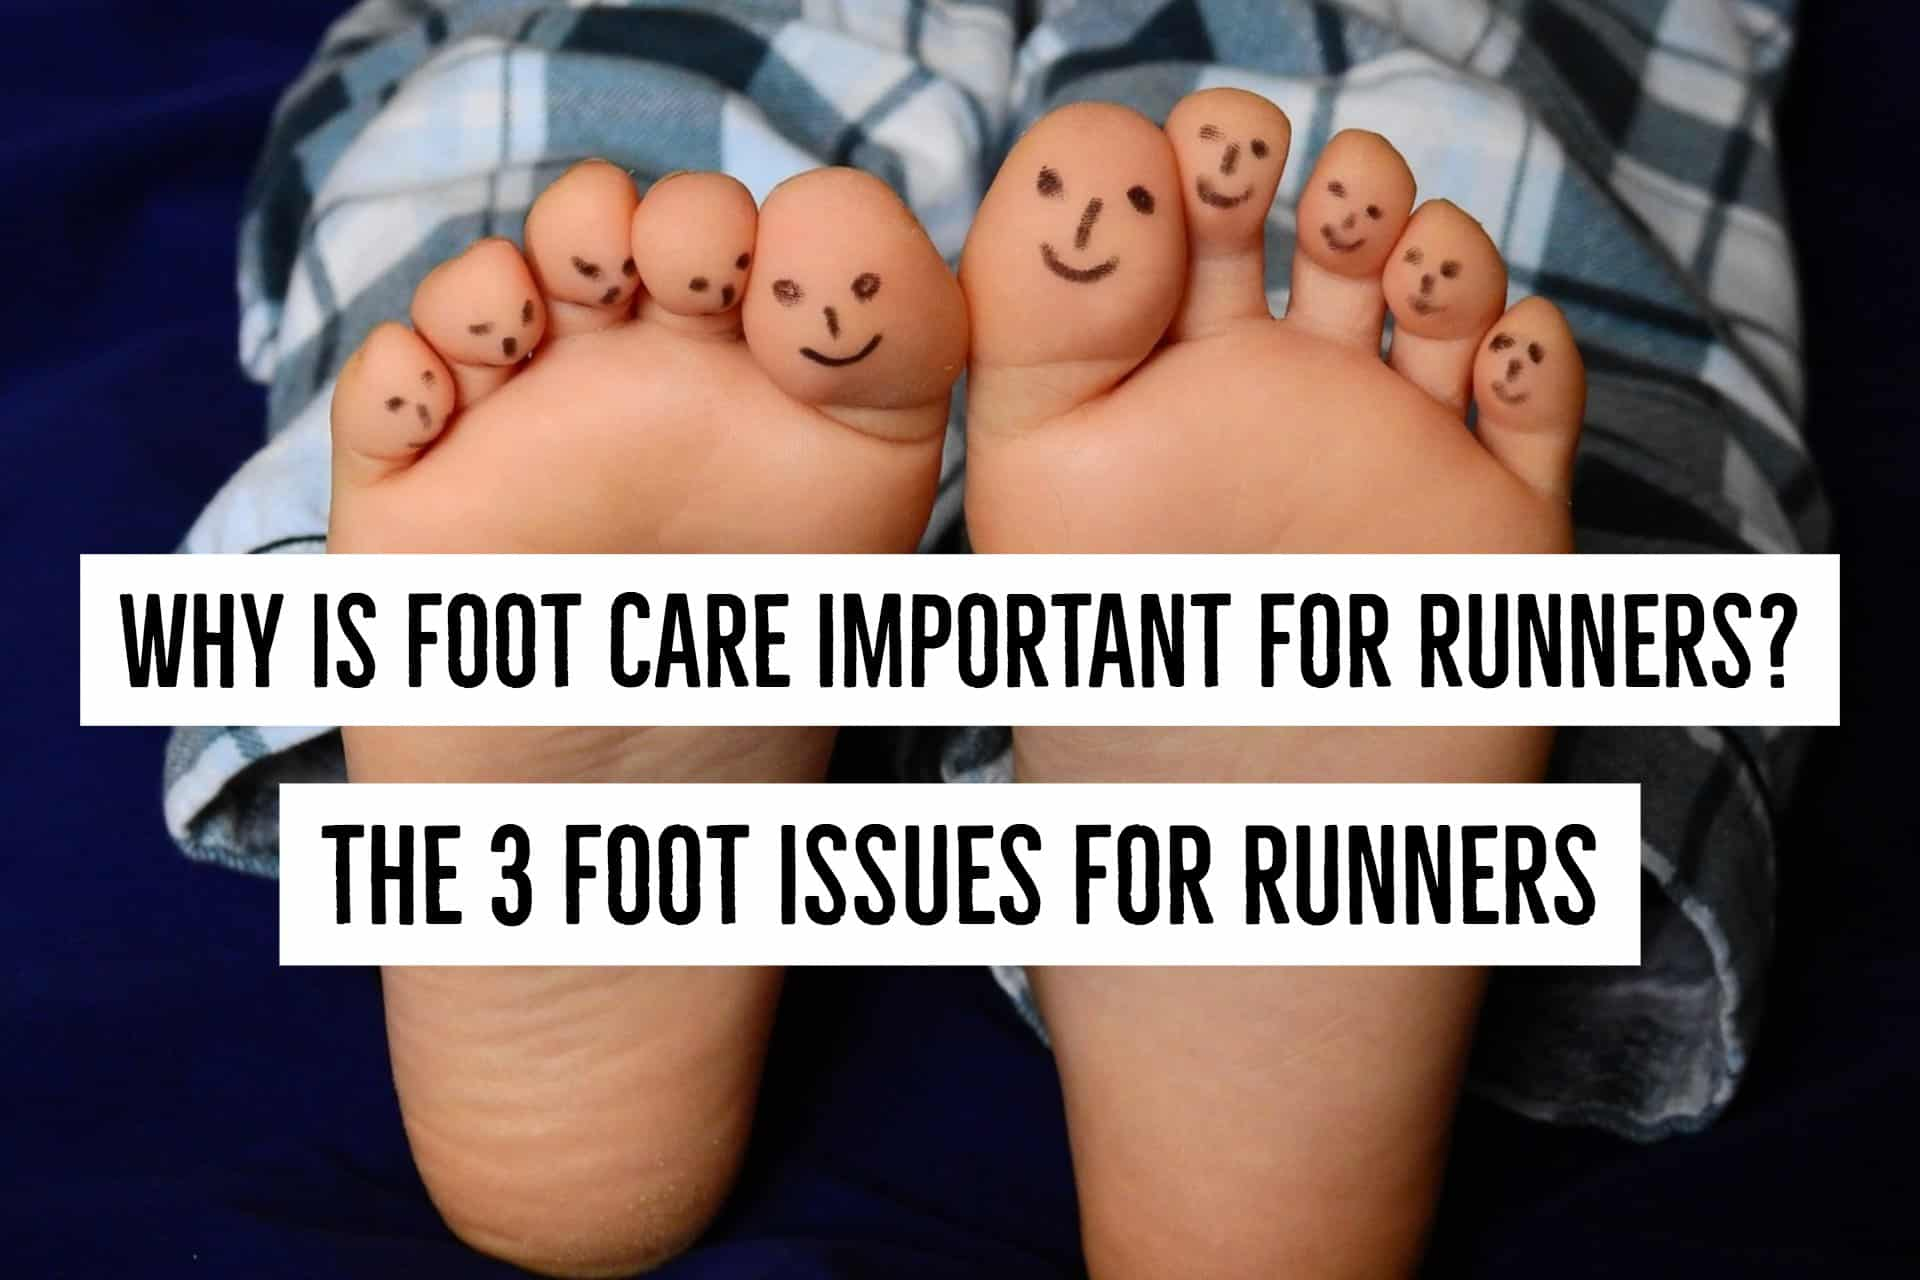 Why is foot care important for runners?